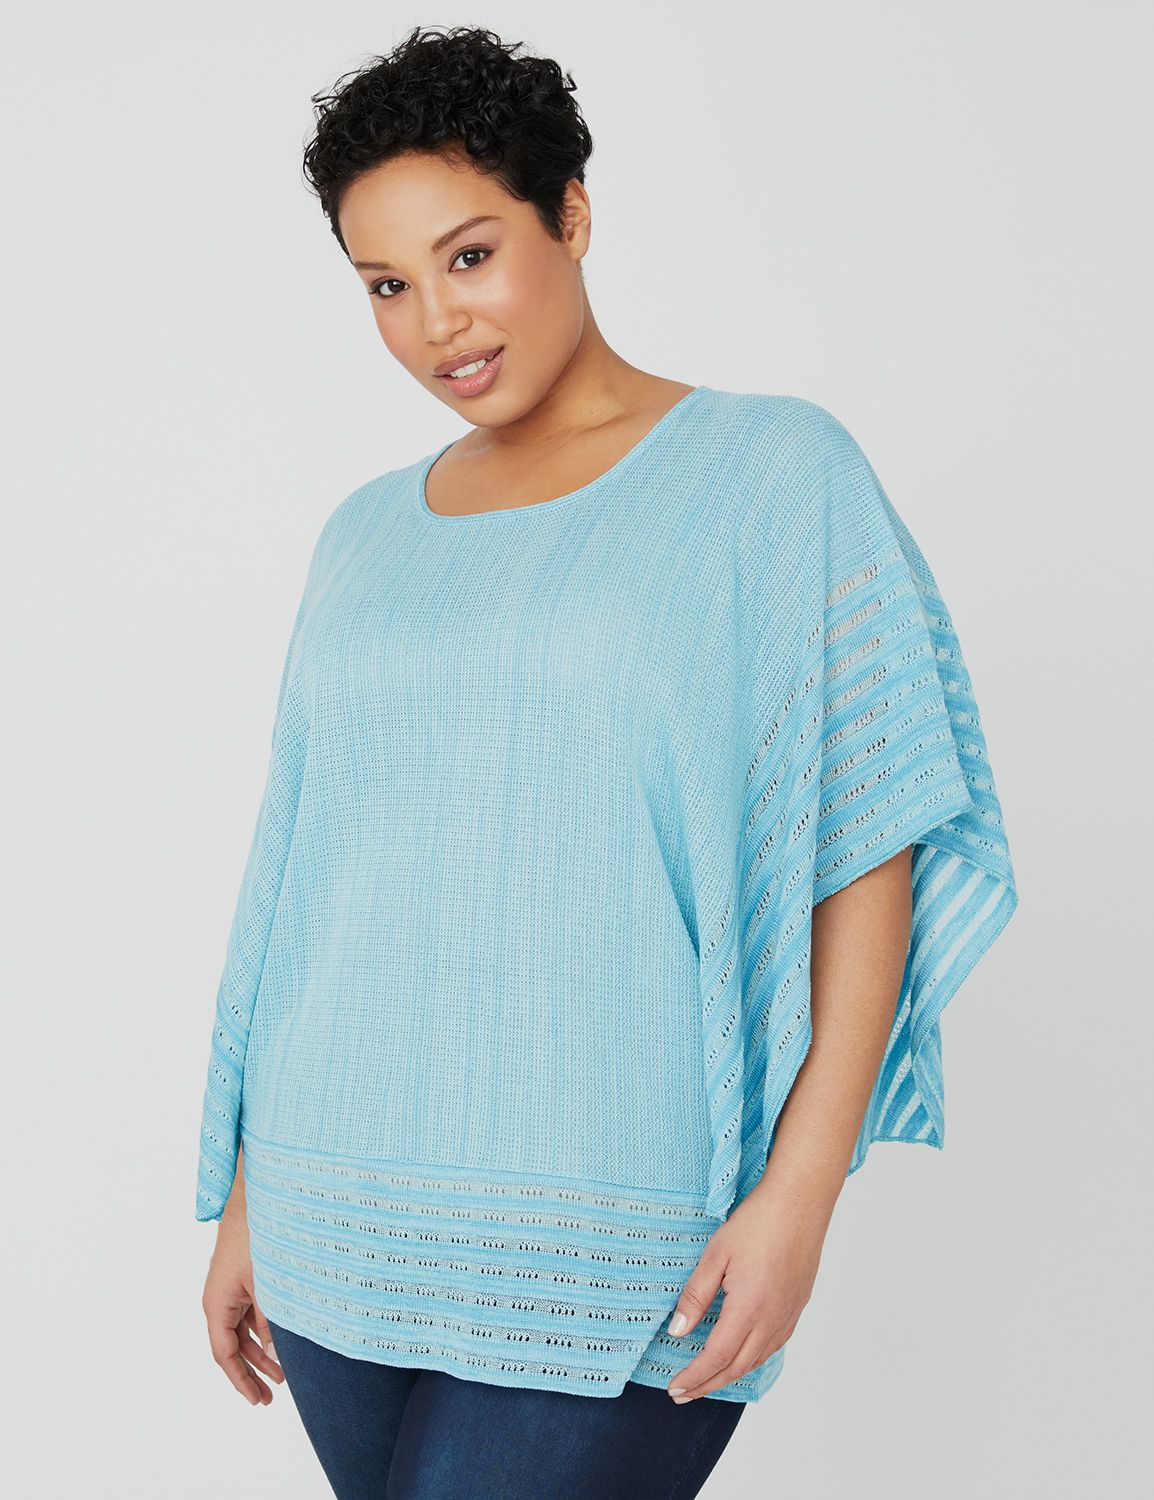 Rippled Edge Sweater 1083897 KimonoPullover 212 MP-300107433